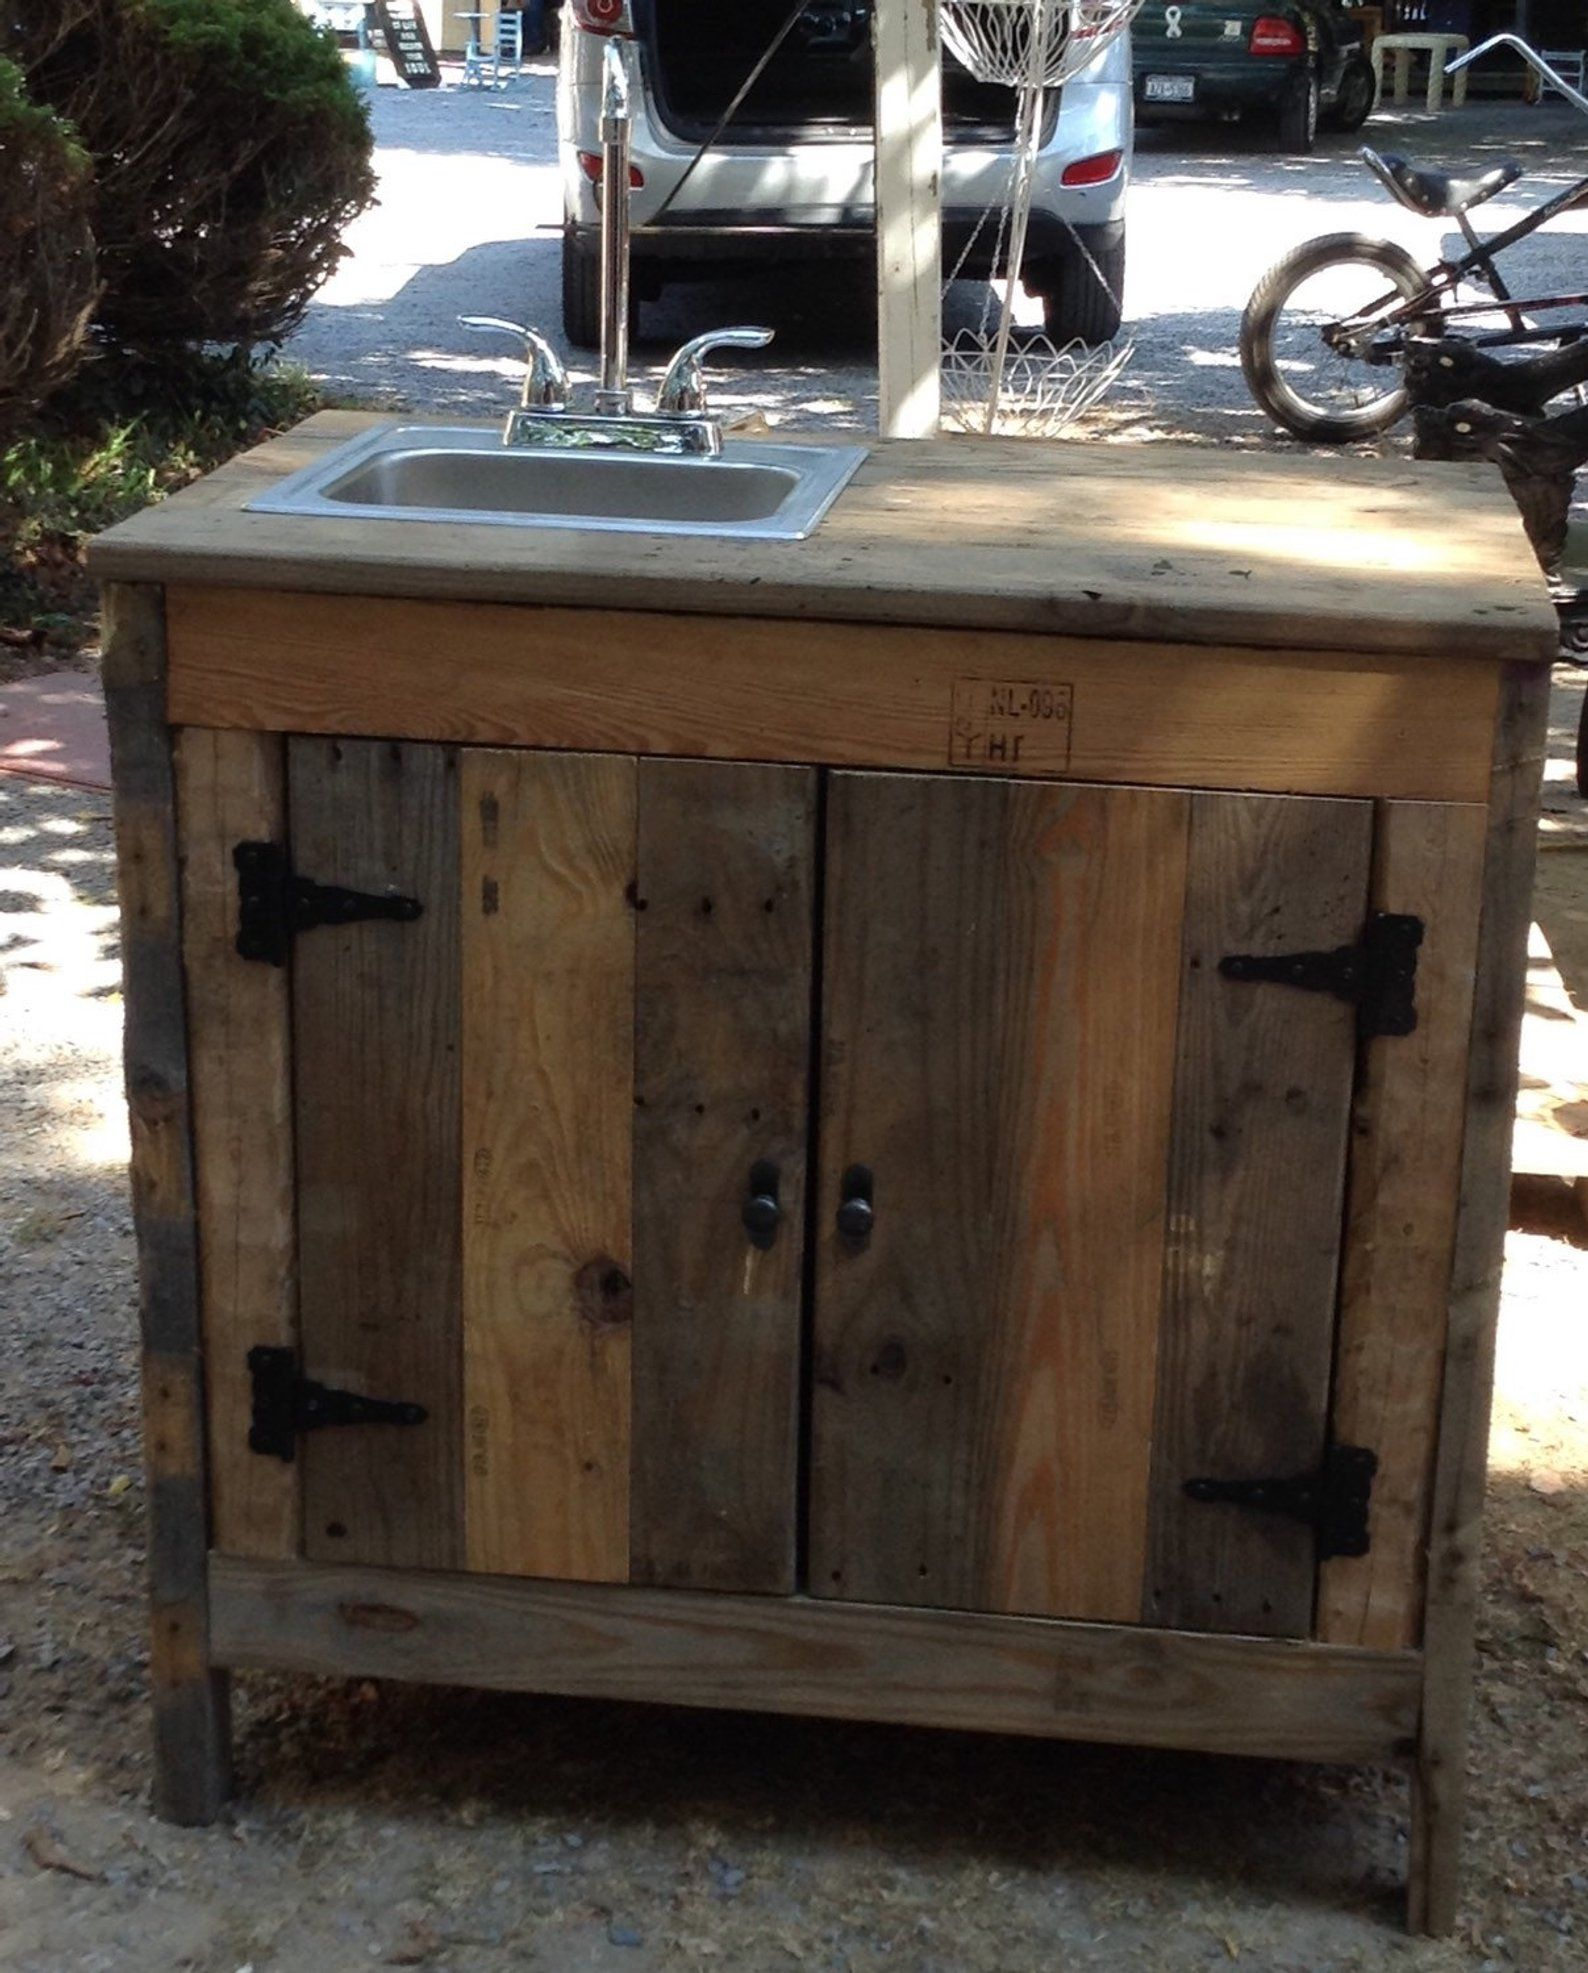 Sink Cabinet For Outdoor Entertainment Area Kitchen Or Bathroom Made With Reclaimed Wood Outdoor Entertaining Area Entertaining Area Outdoor Sinks